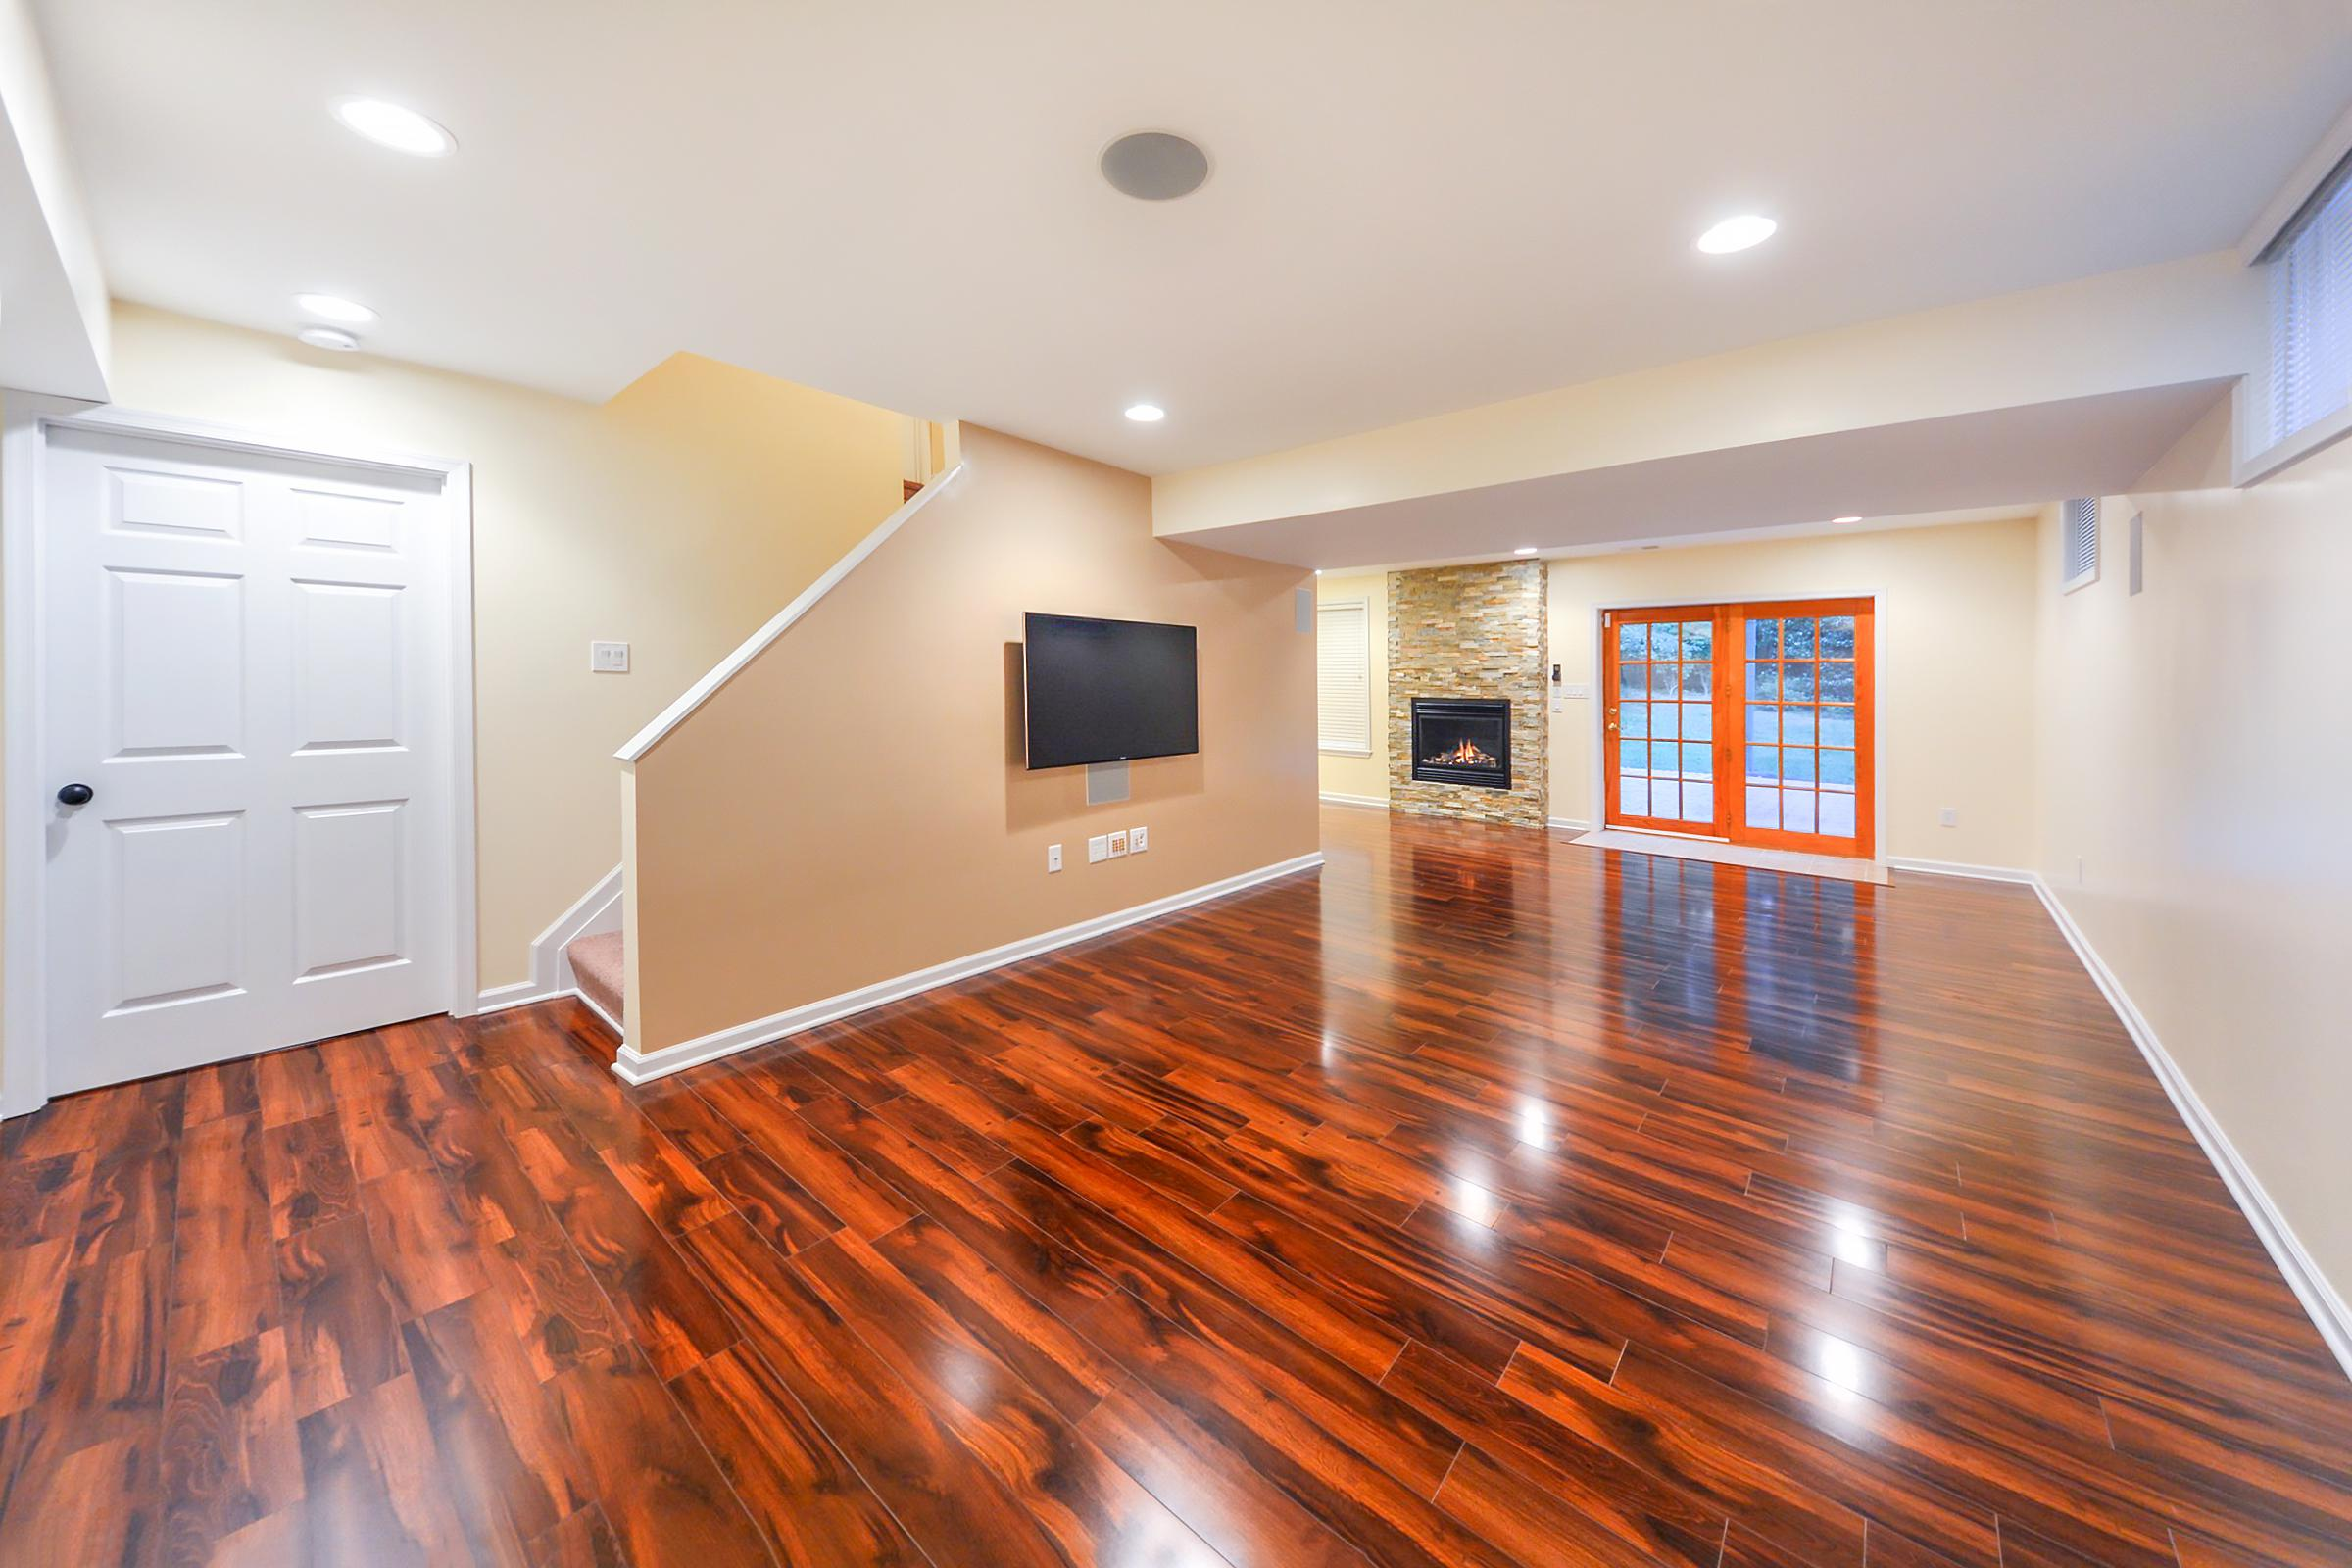 Basement Remodeling Cost Guide Updated With Prices In 2018